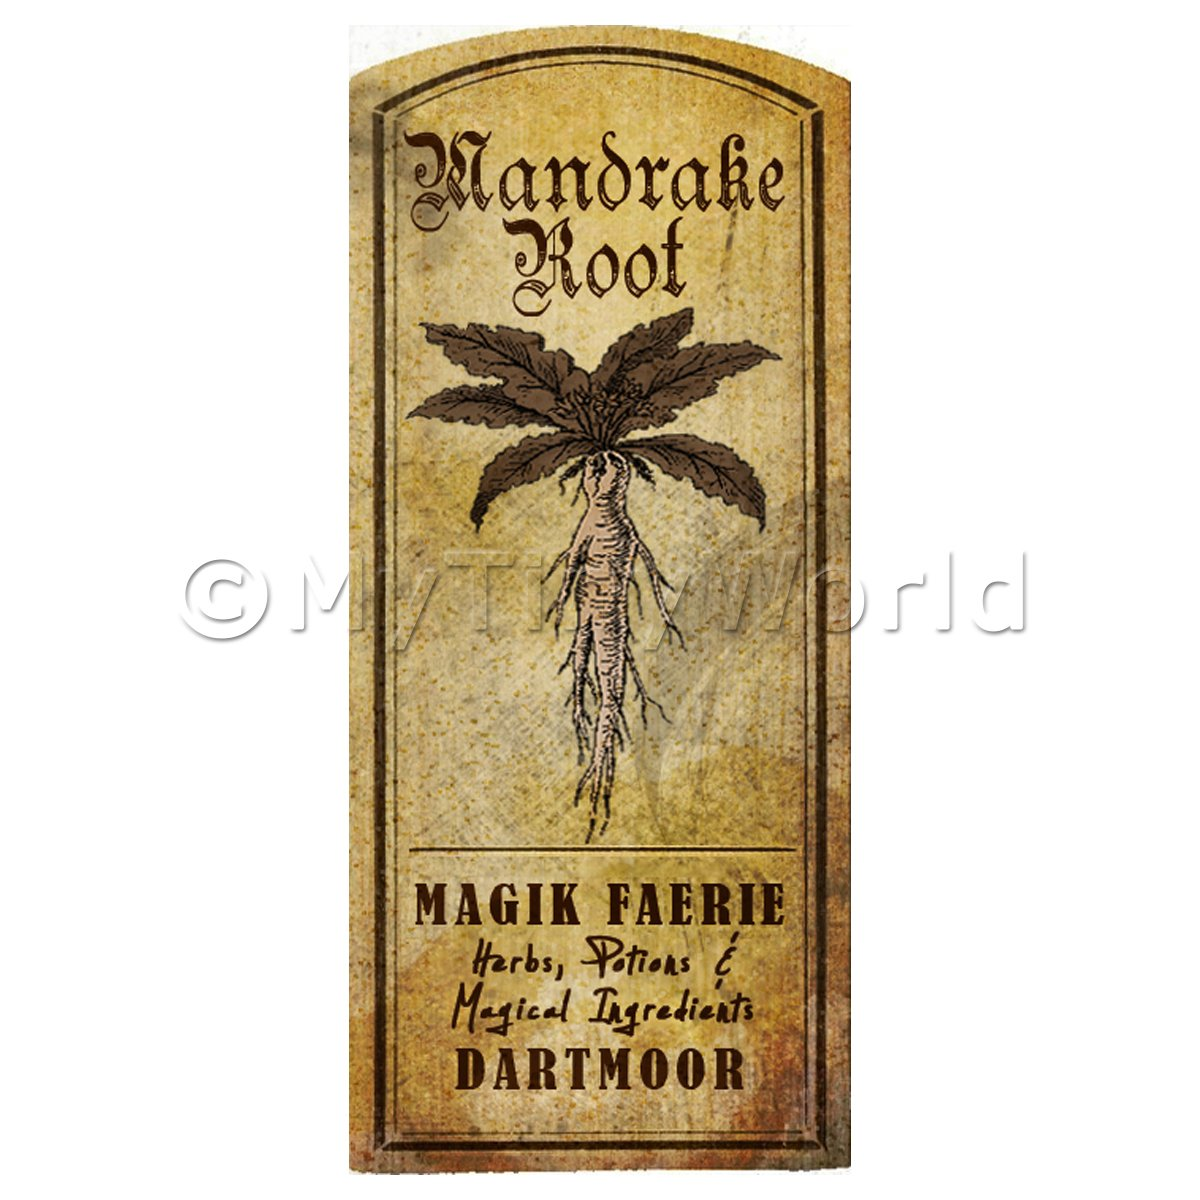 Dolls House Herbalist/Apothecary Mandrake Herb Short Sepia Label